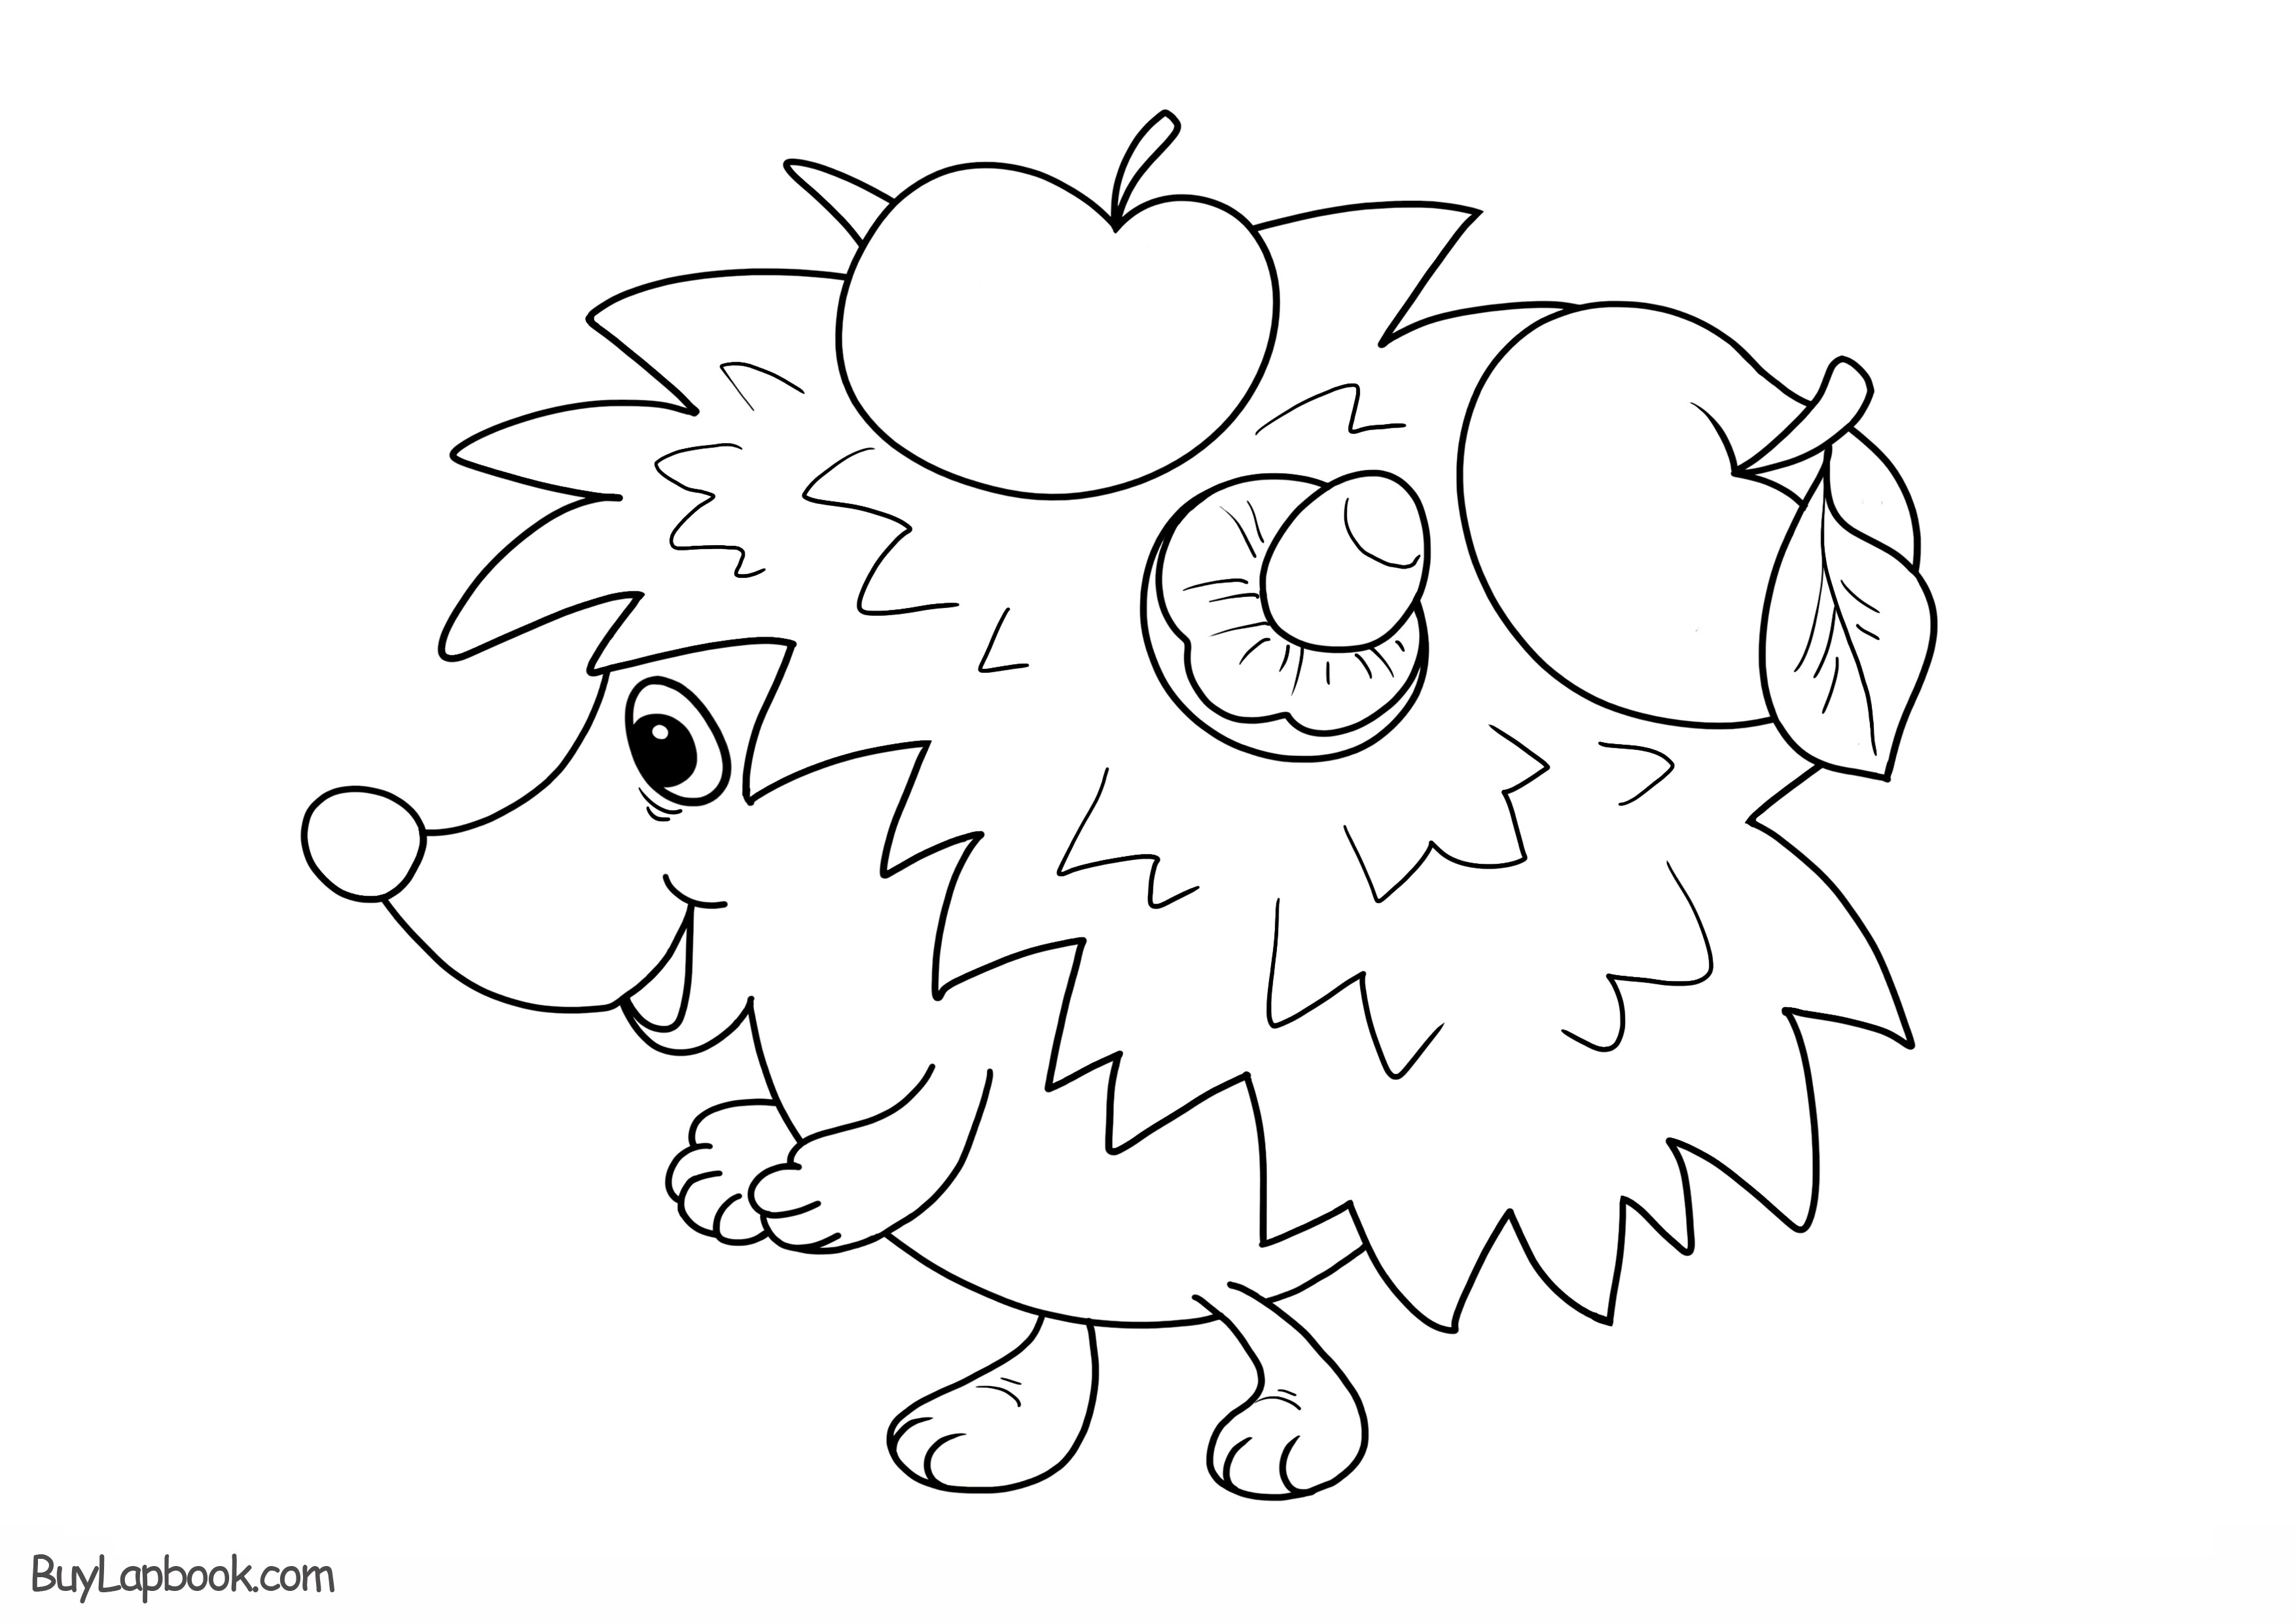 pictures of hedgehogs to colour hedge coloring pages hedgehogs pictures to colour of